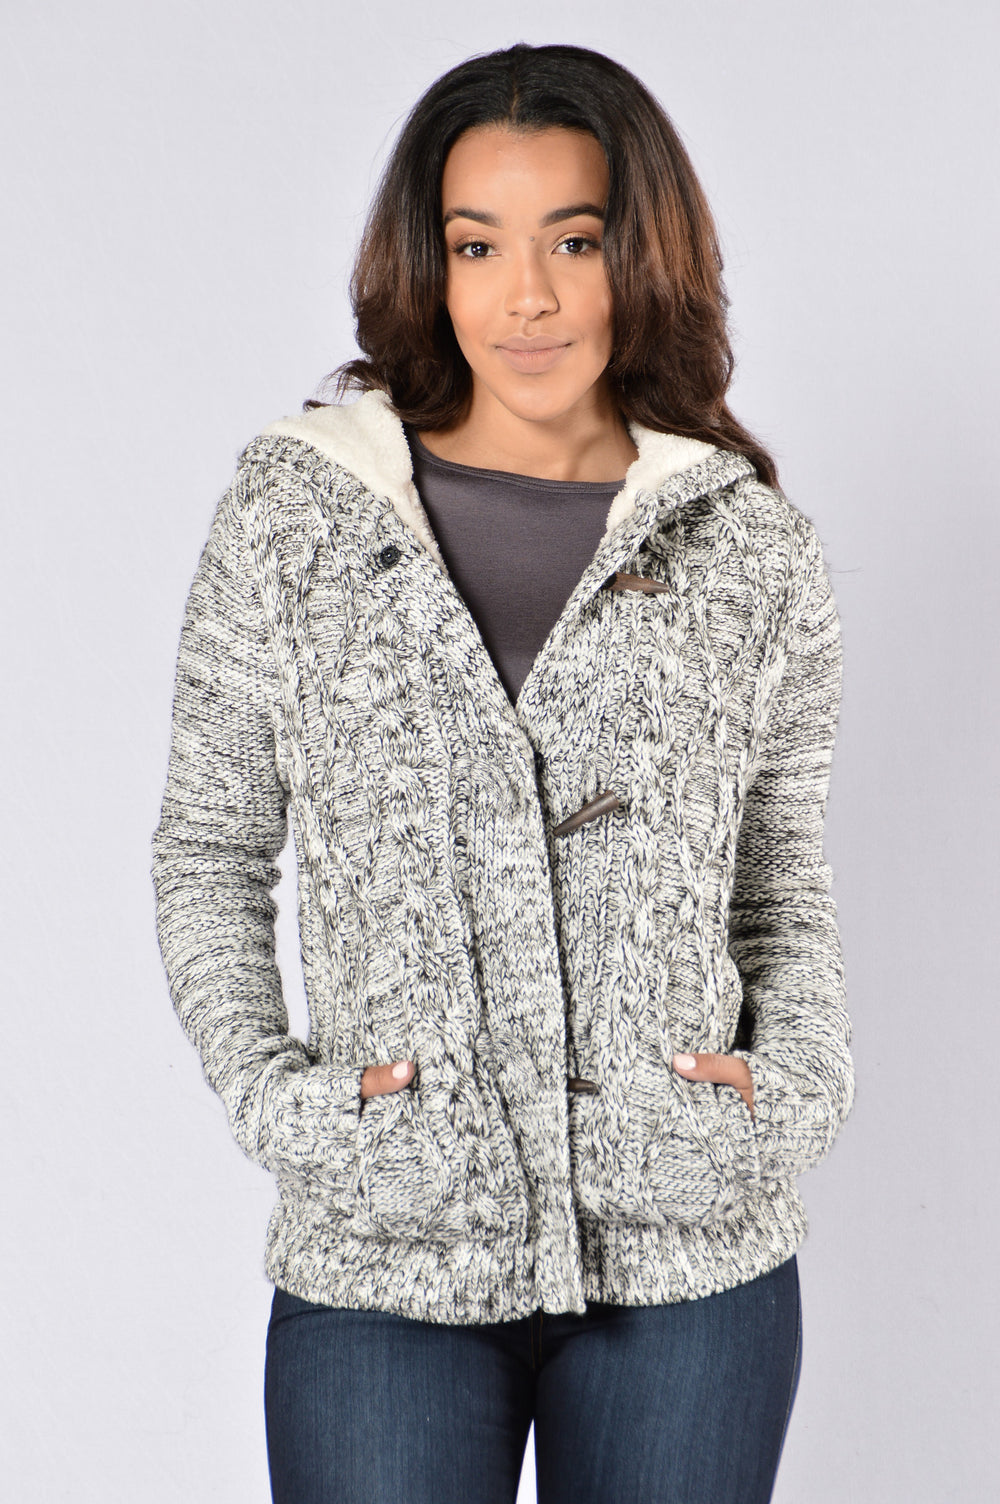 Feel My Warmth Jacket - Black/Ivory